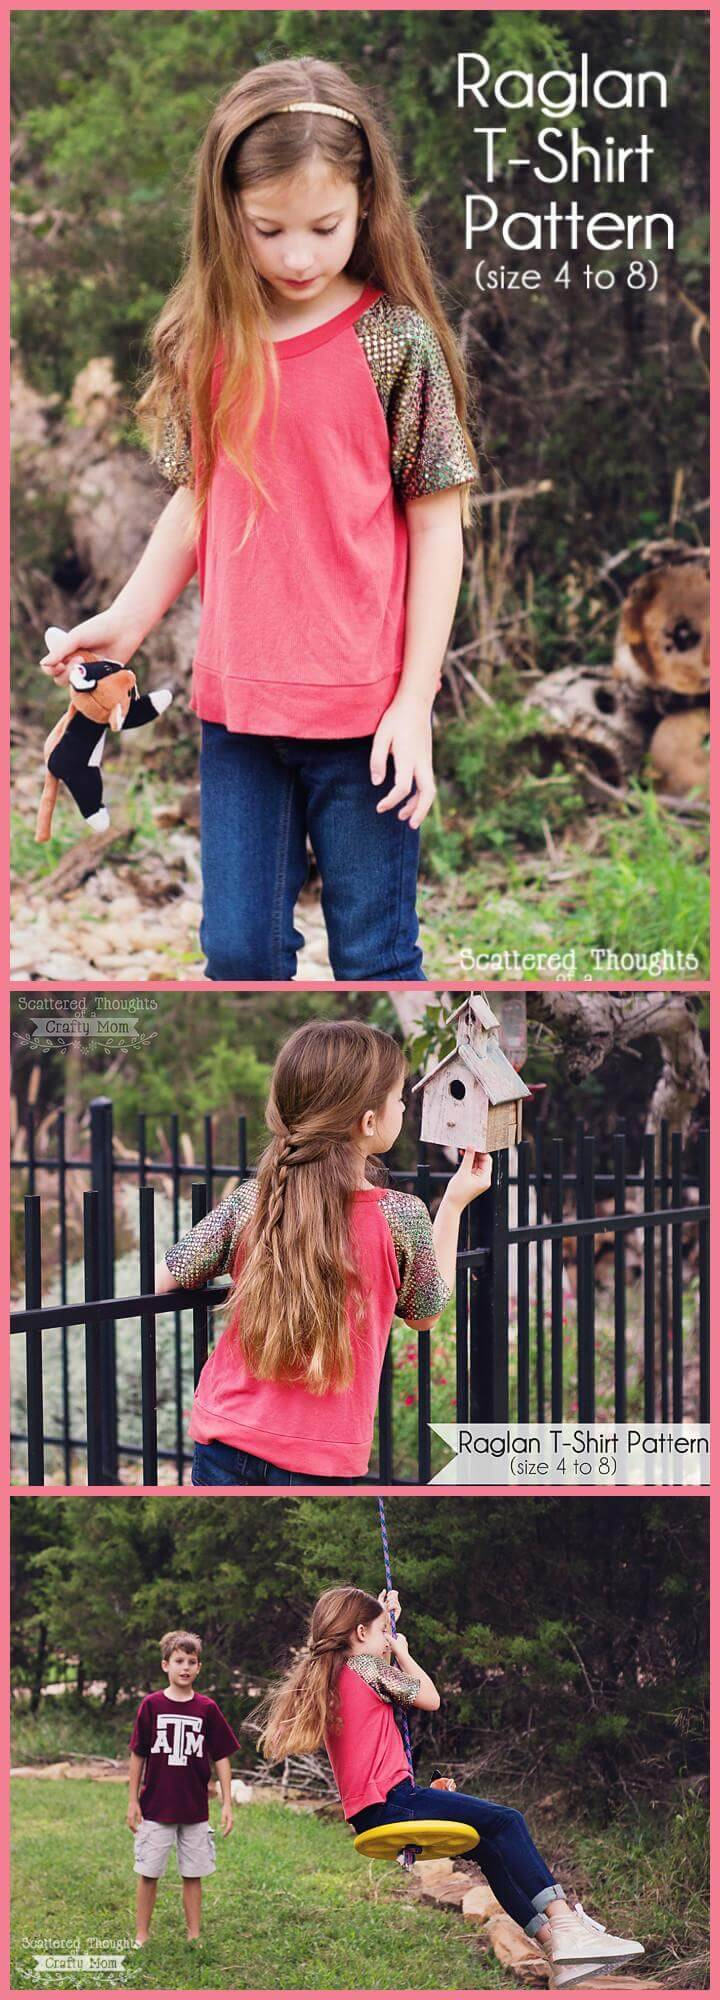 easy girls raglant t-shirt free pattern and tutorial